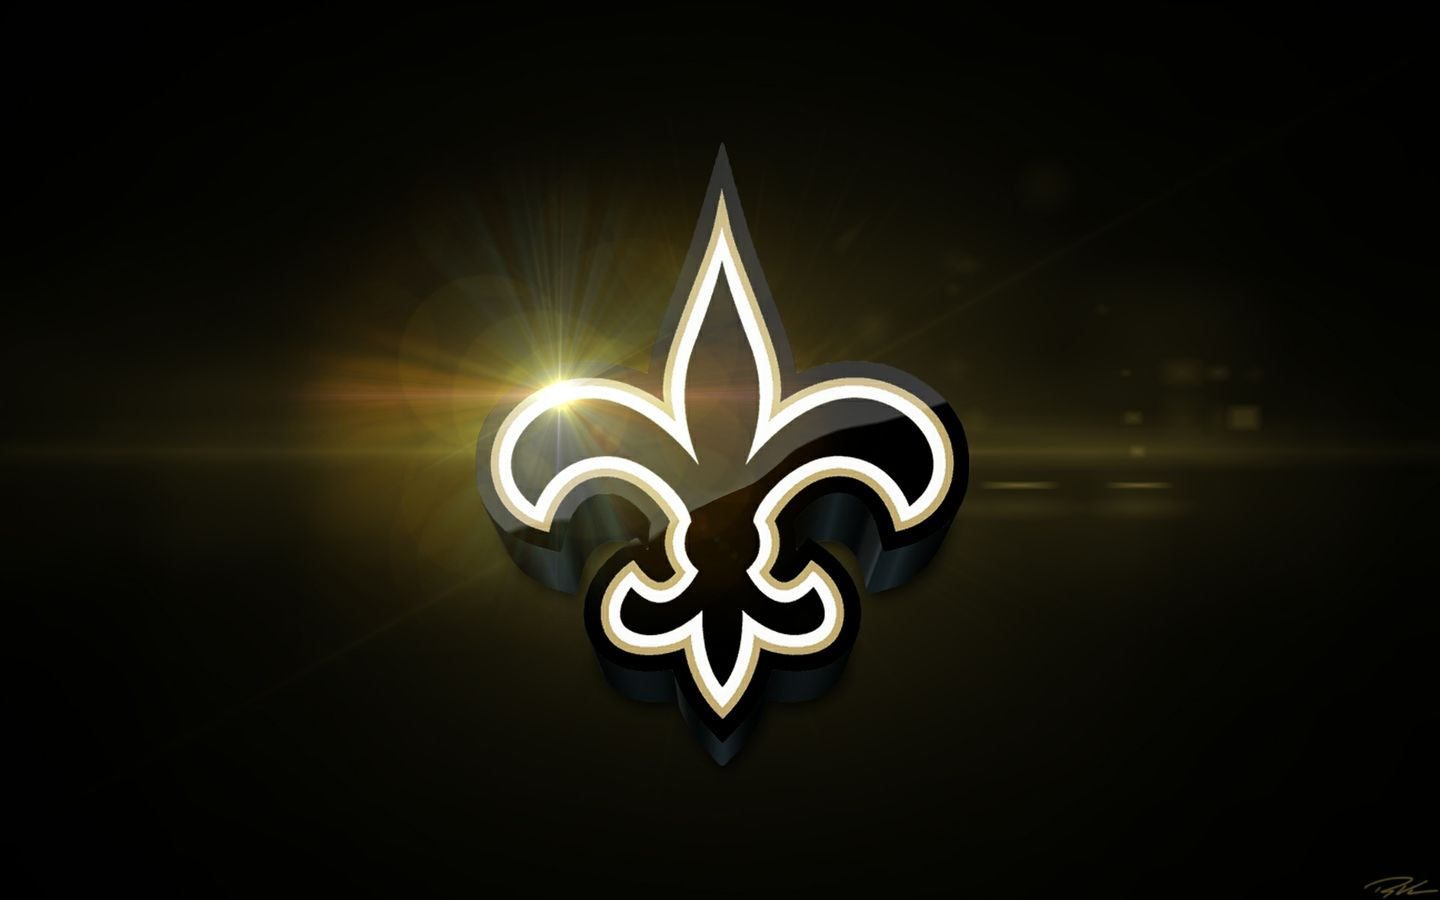 2018 New Orleans Saints Desktop Wallpaper Schedule.